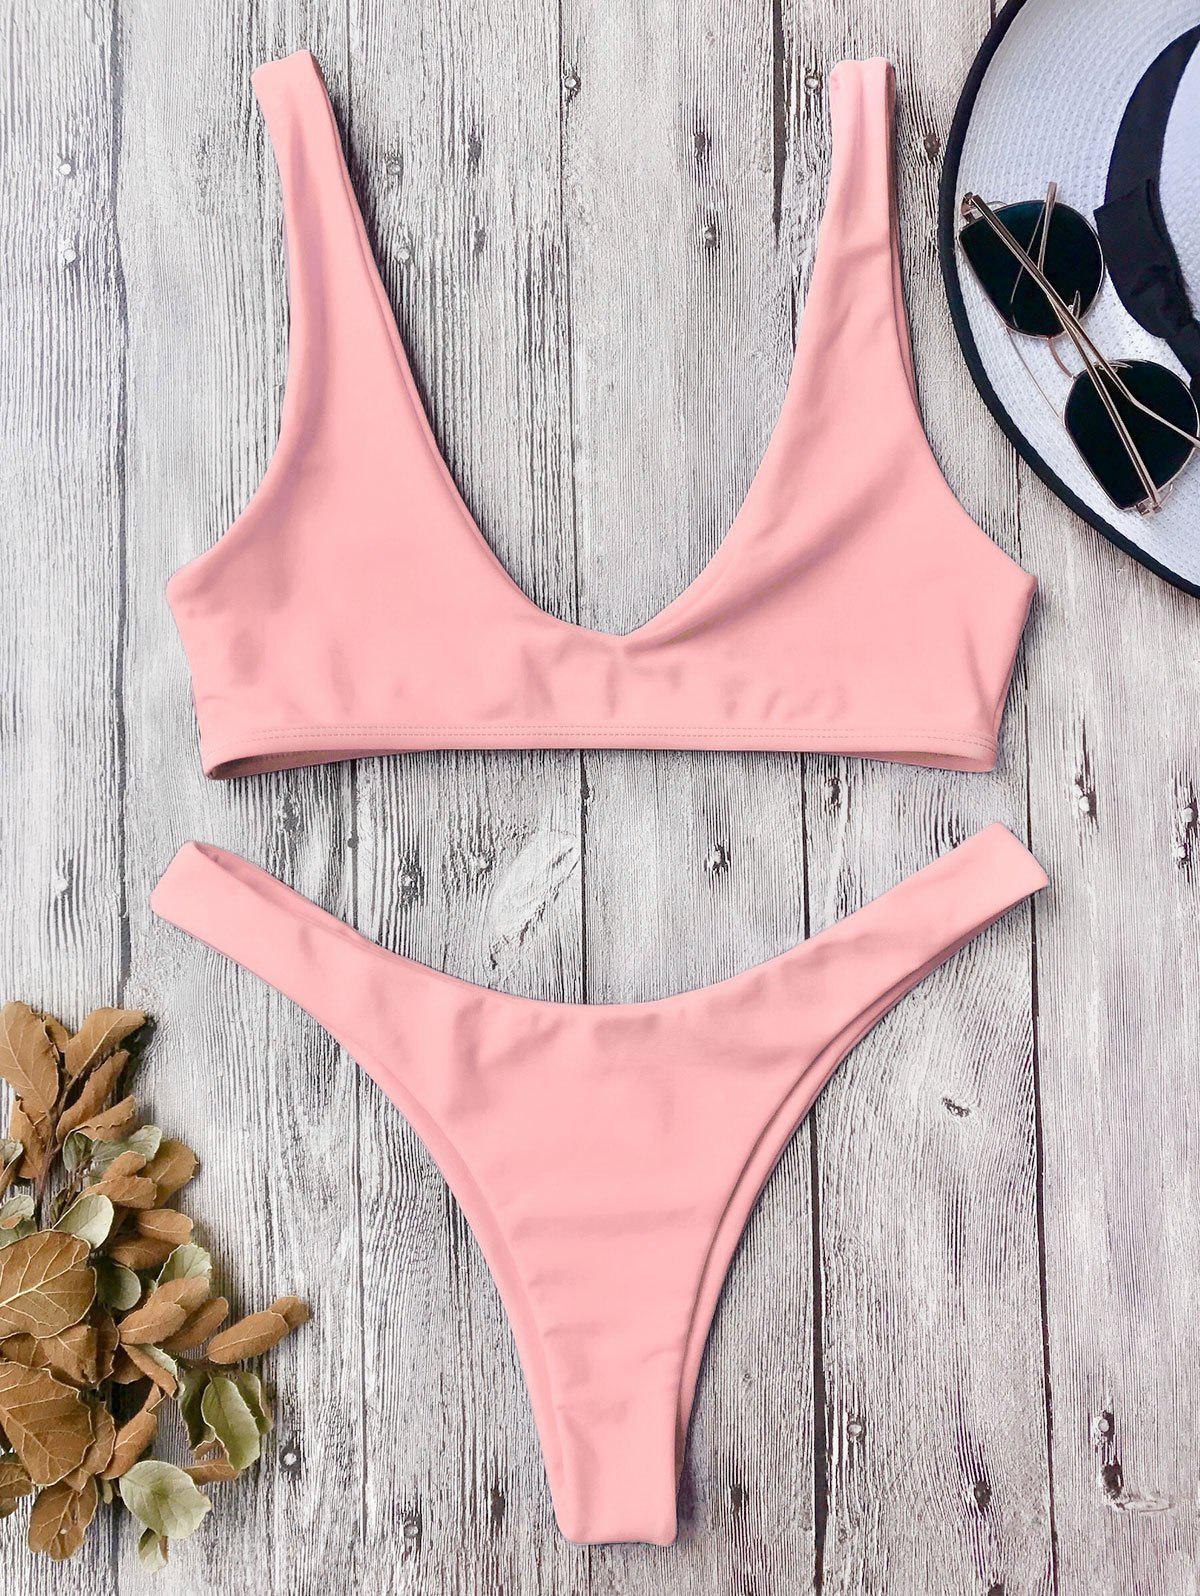 High Cut Scoop Neck Bikini SetWOMEN<br><br>Size: M; Color: PINK; Swimwear Type: Bikini; Gender: For Women; Material: Polyester,Spandex; Bra Style: Bralette; Support Type: Wire Free; Neckline: Scoop Neck; Pattern Type: Solid; Waist: Low Waisted; Elasticity: Elastic; Weight: 0.2000kg; Package Contents: 1 x Top  1 x Bottoms;